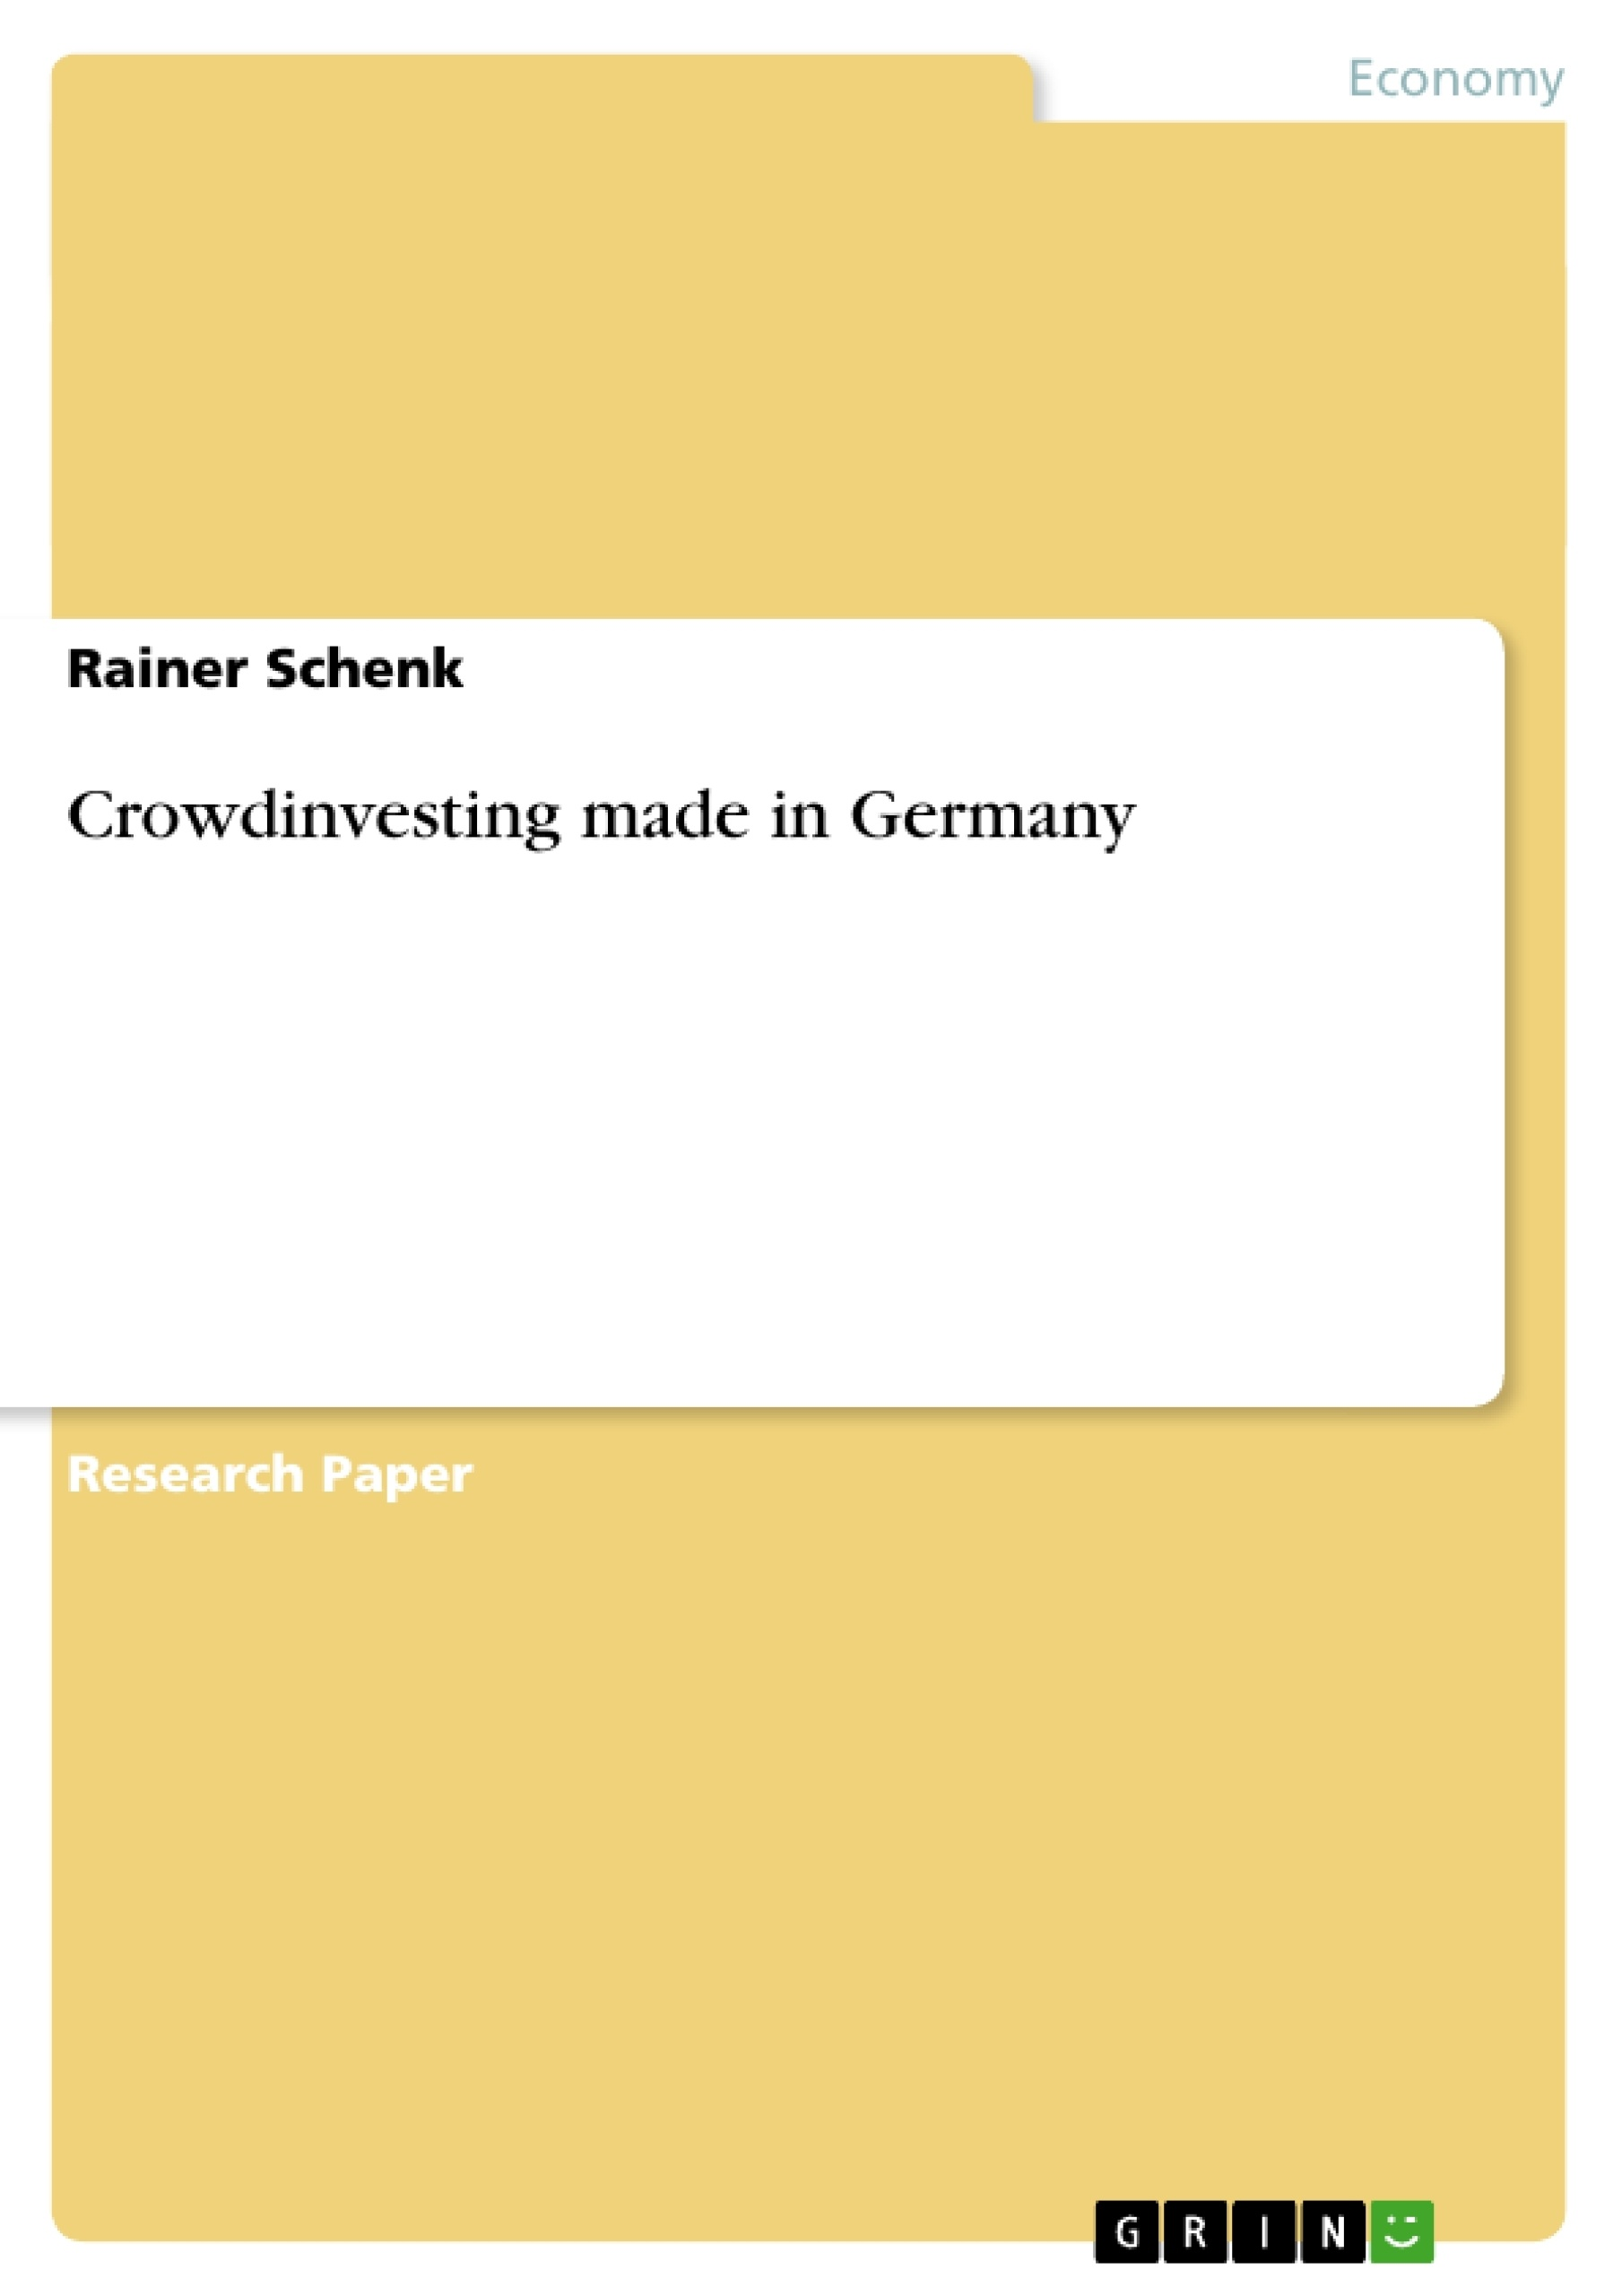 Title: Crowdinvesting made in Germany